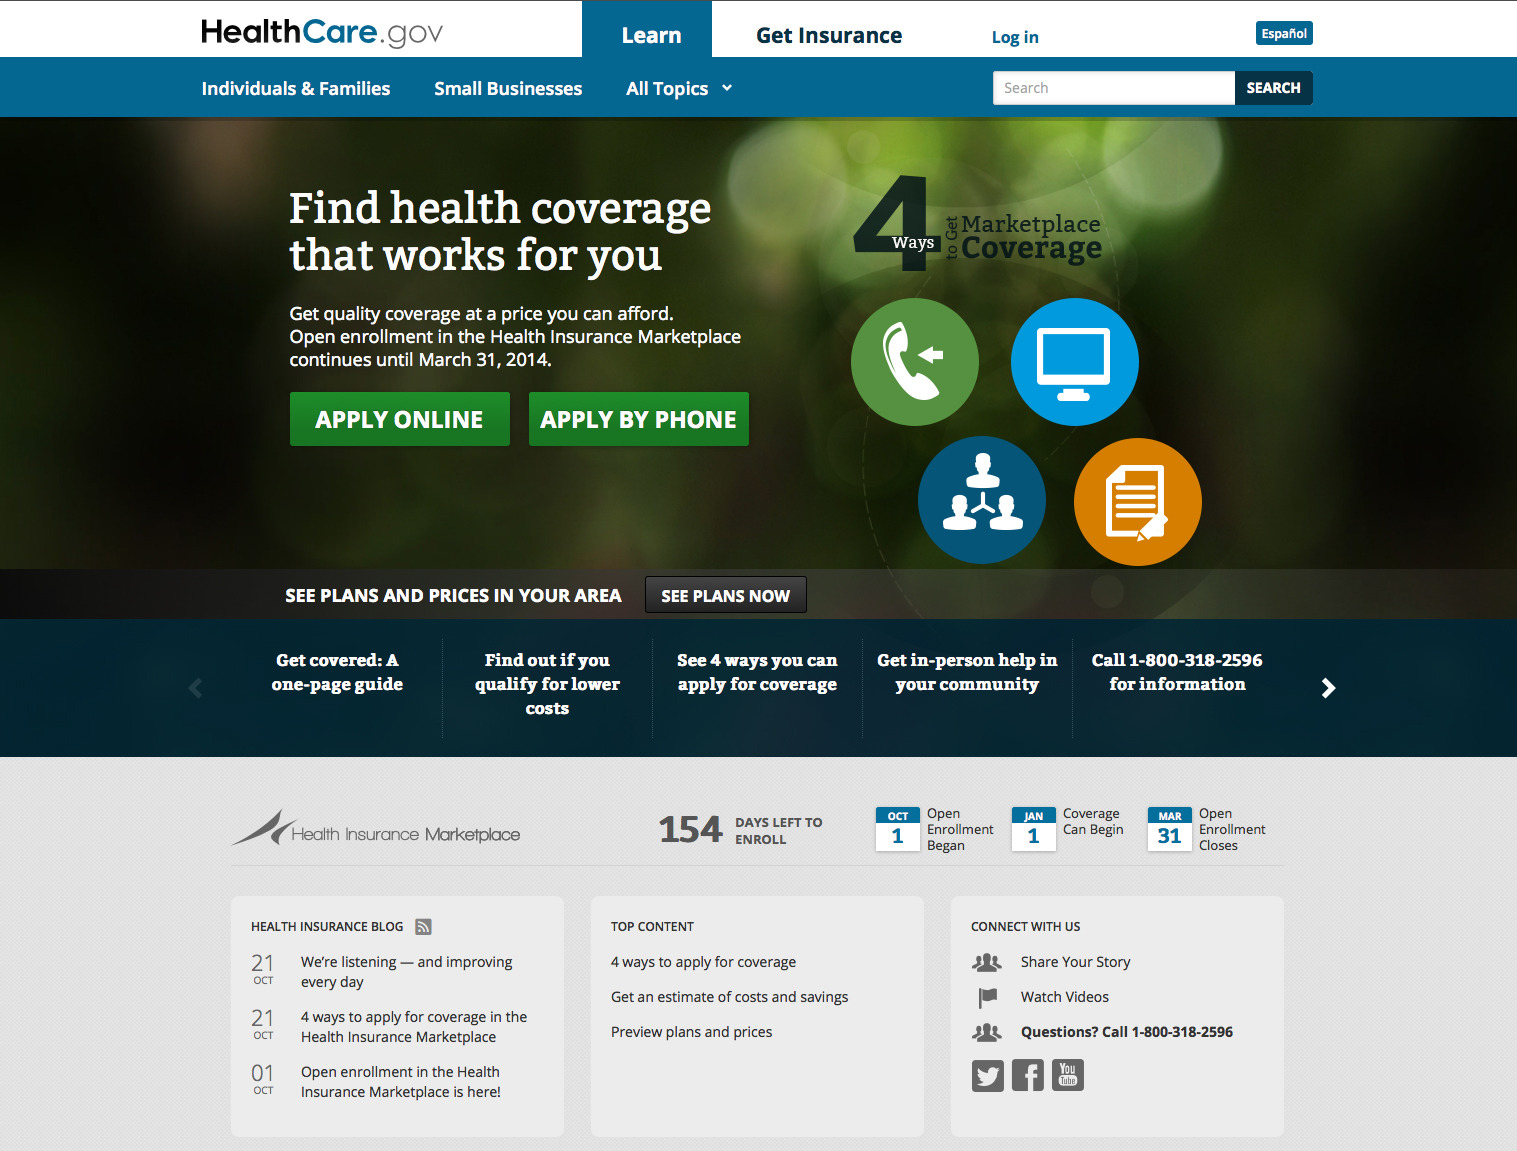 healthcare.gov, was, targeted, for, a, cyberattack,, according, to, one, obama, administration, official,